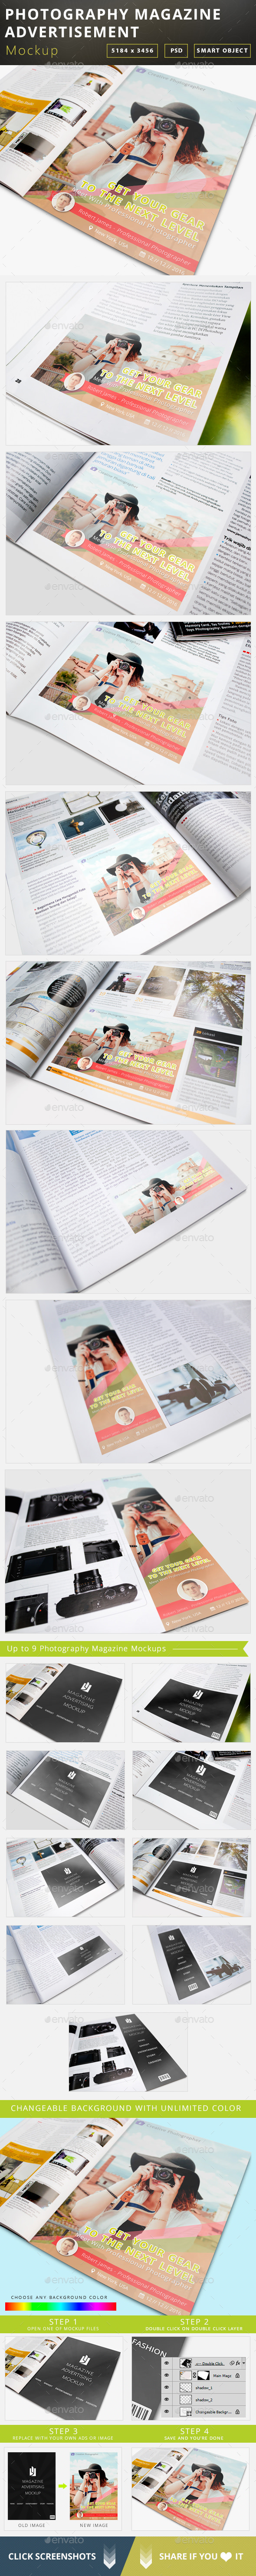 Photography Magazine Advertisement Mockup - Magazines Print